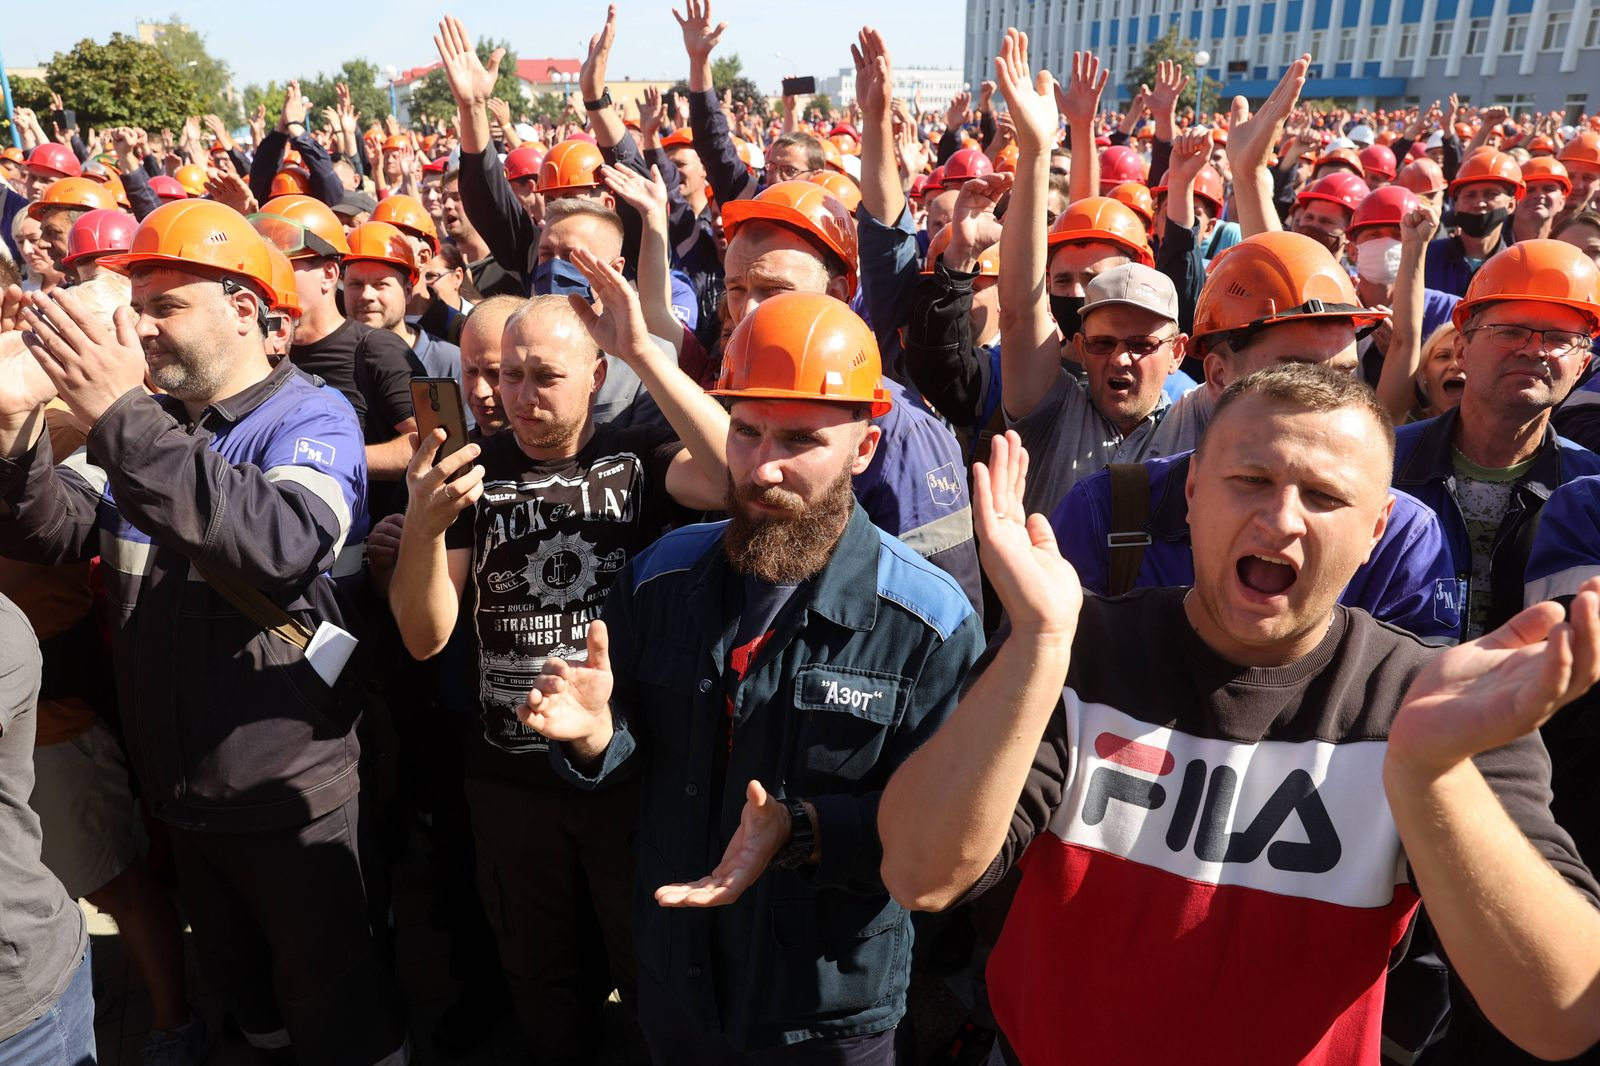 GRODNO, BELARUS - AUGUST 14, 2020: Workers stage a wildcat strike at the Grodno Azot chemical plant in support of prote